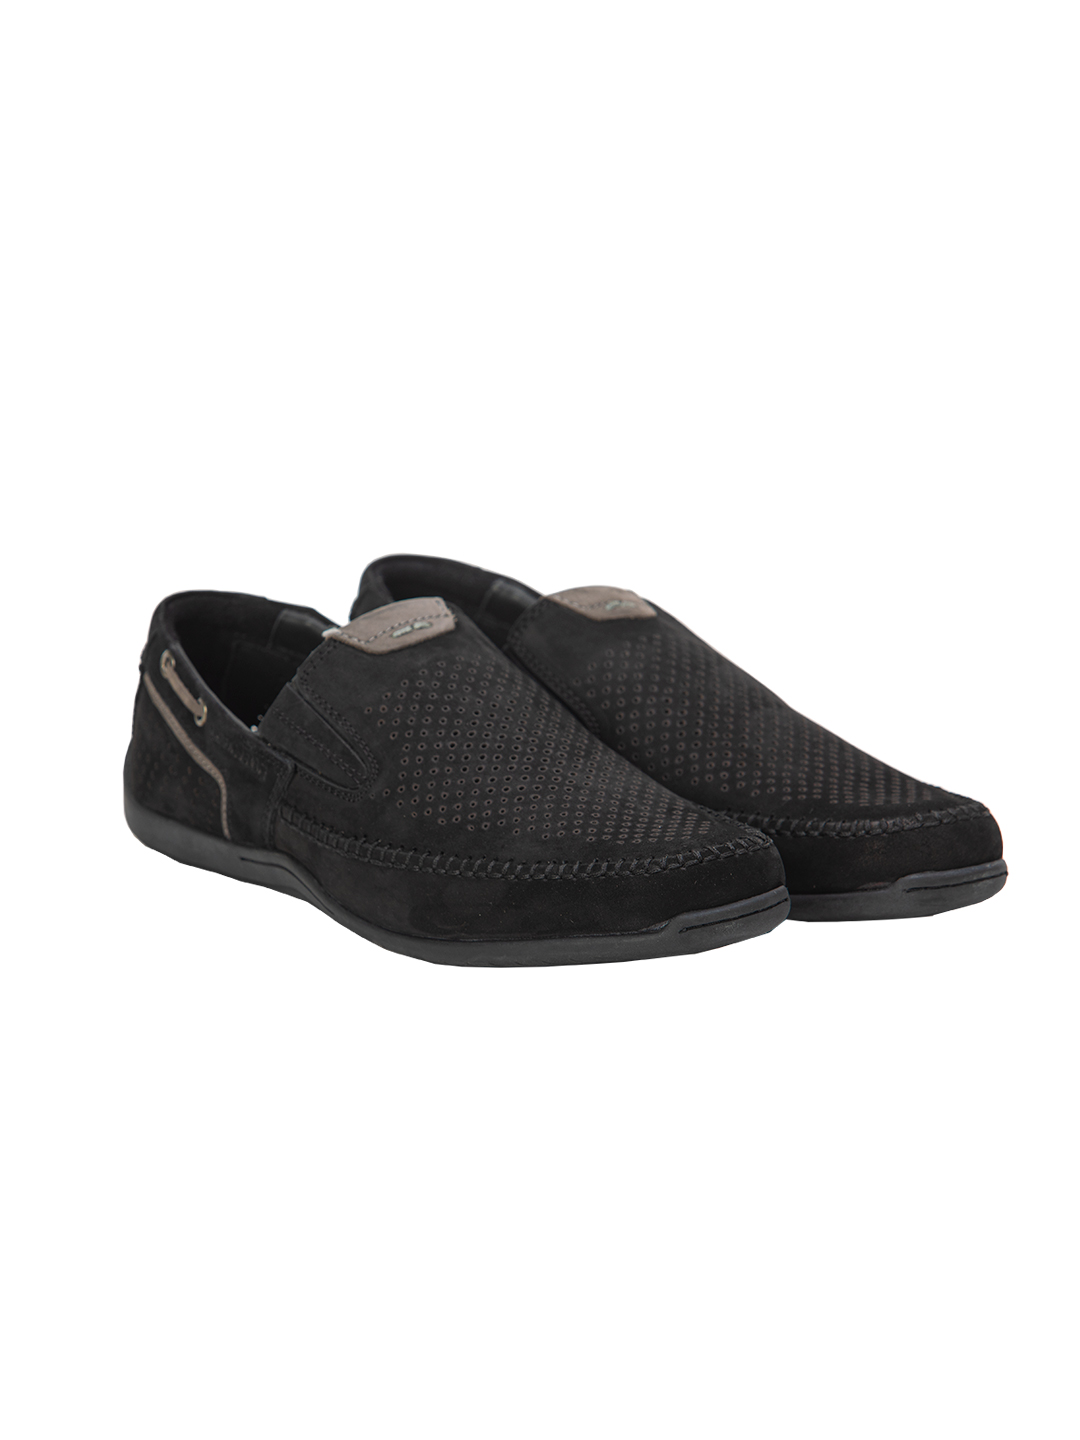 Buy Von Wellx Germany Comfort Black Ian Shoes Online in Madhya Pradesh